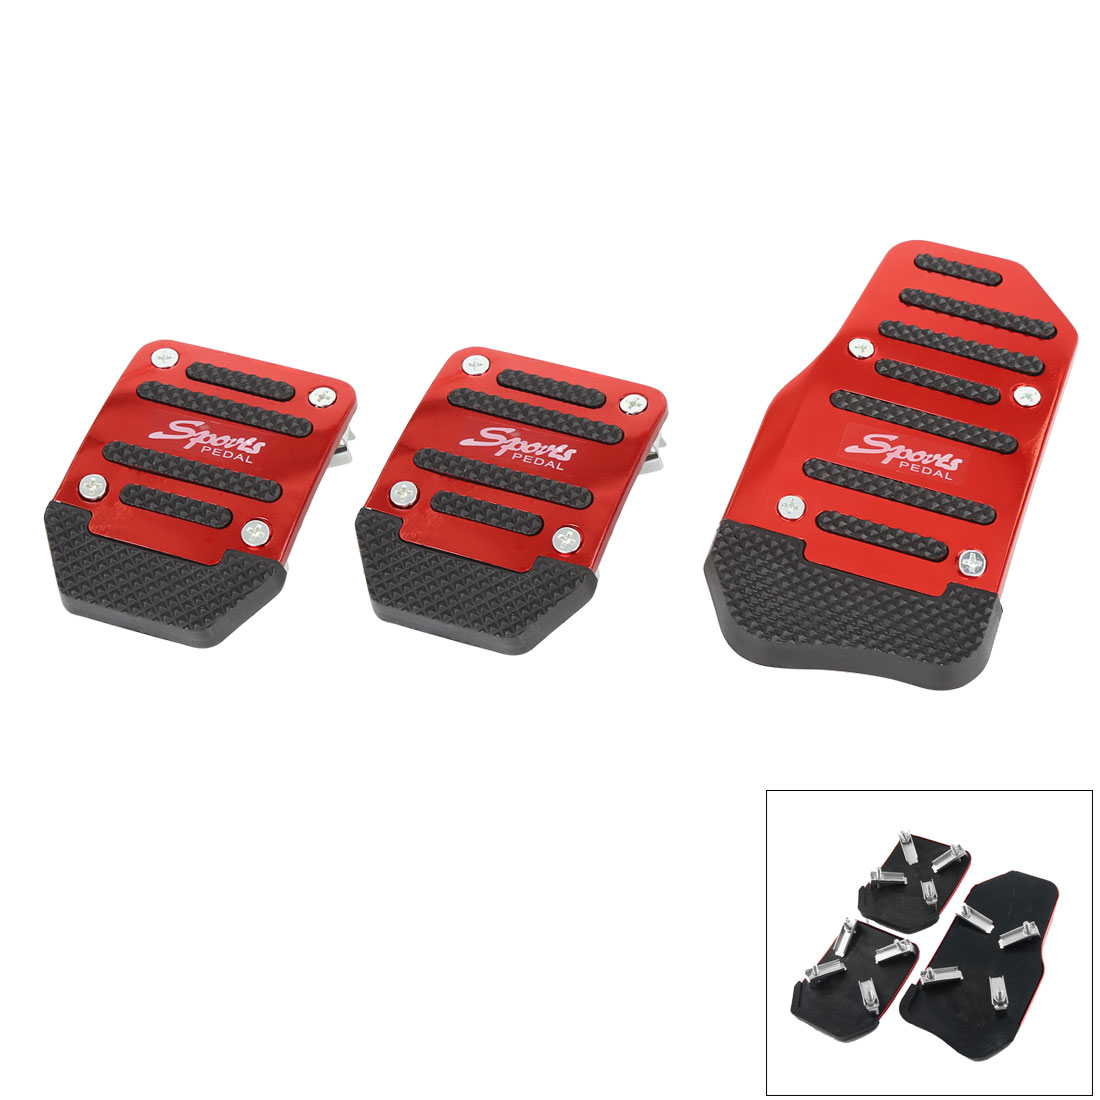 3 in 1 Burgundy Black Non-slip Gas Clutch Brake Pedal Pad Cover Set for Car Auto